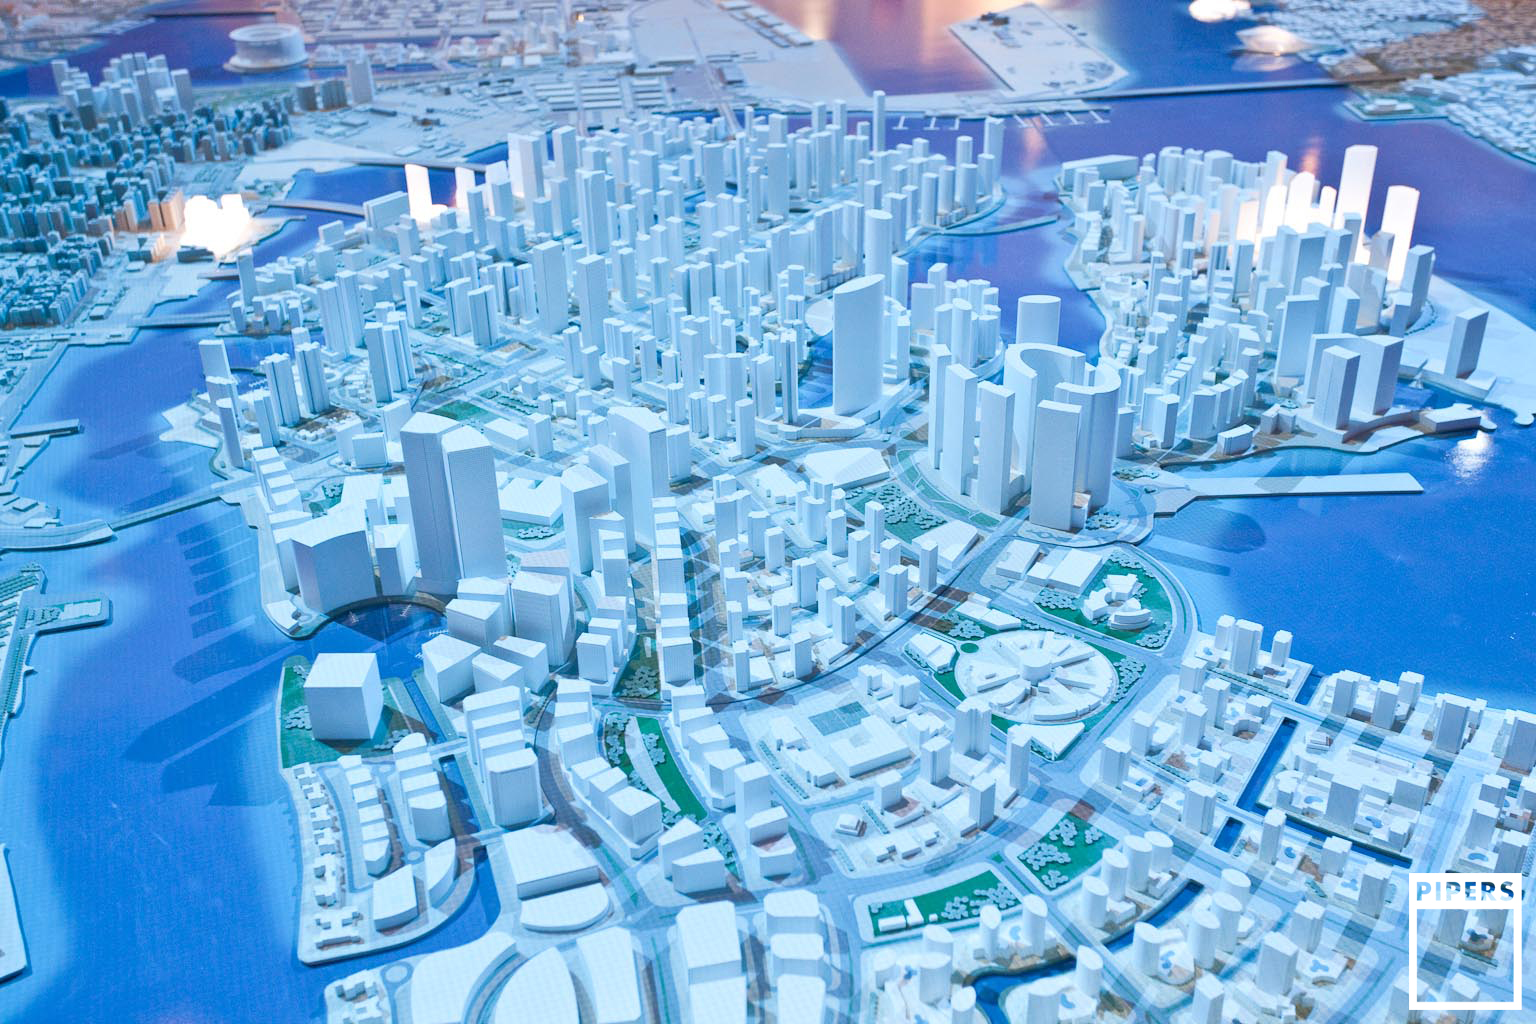 ABU DHABI VISION 2030 MODEL - UPC - 1:2000 SCALE